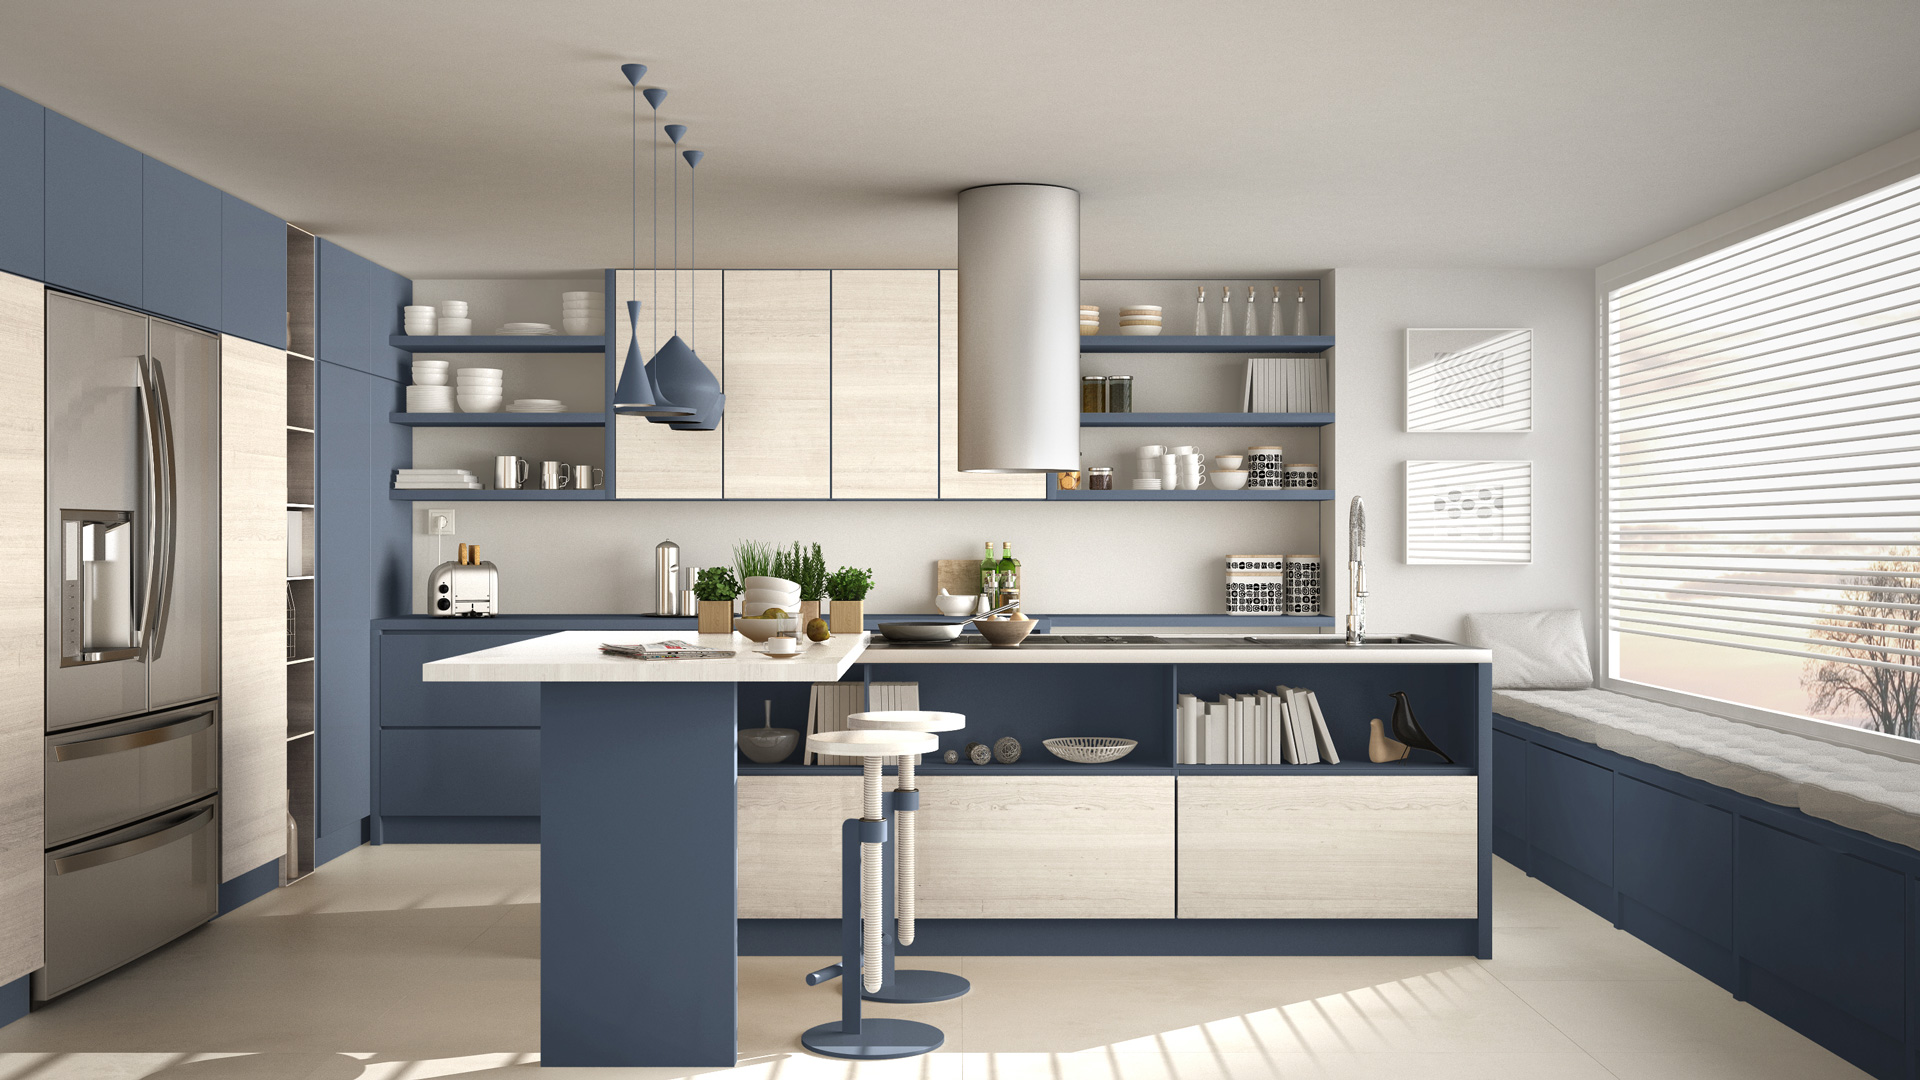 Kitchen Cabinet Color Trend This Summer 2018 - CabinetCorp